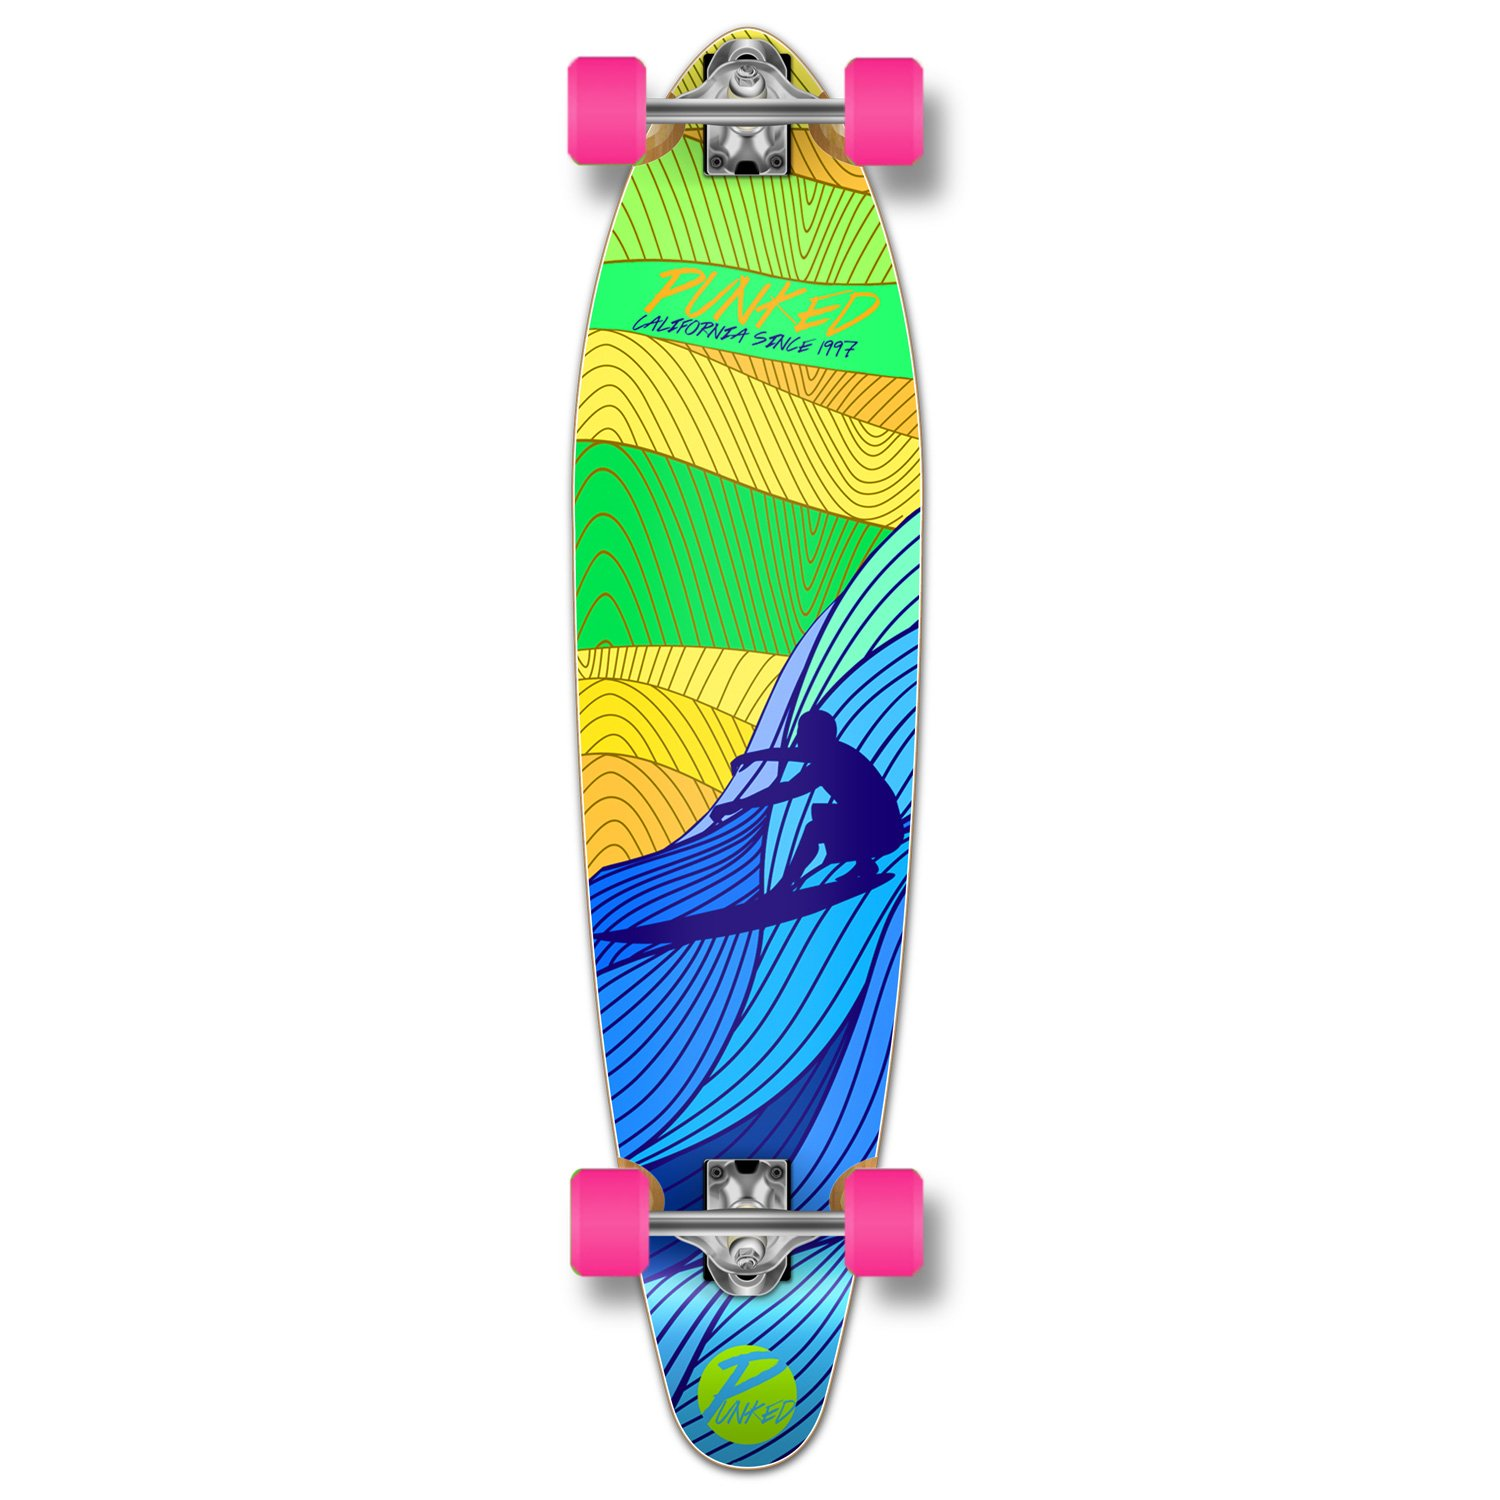 Yocaher Punked Blue Surf's Up Longboard Complete skateboard - available in All shapes (Kicktail)